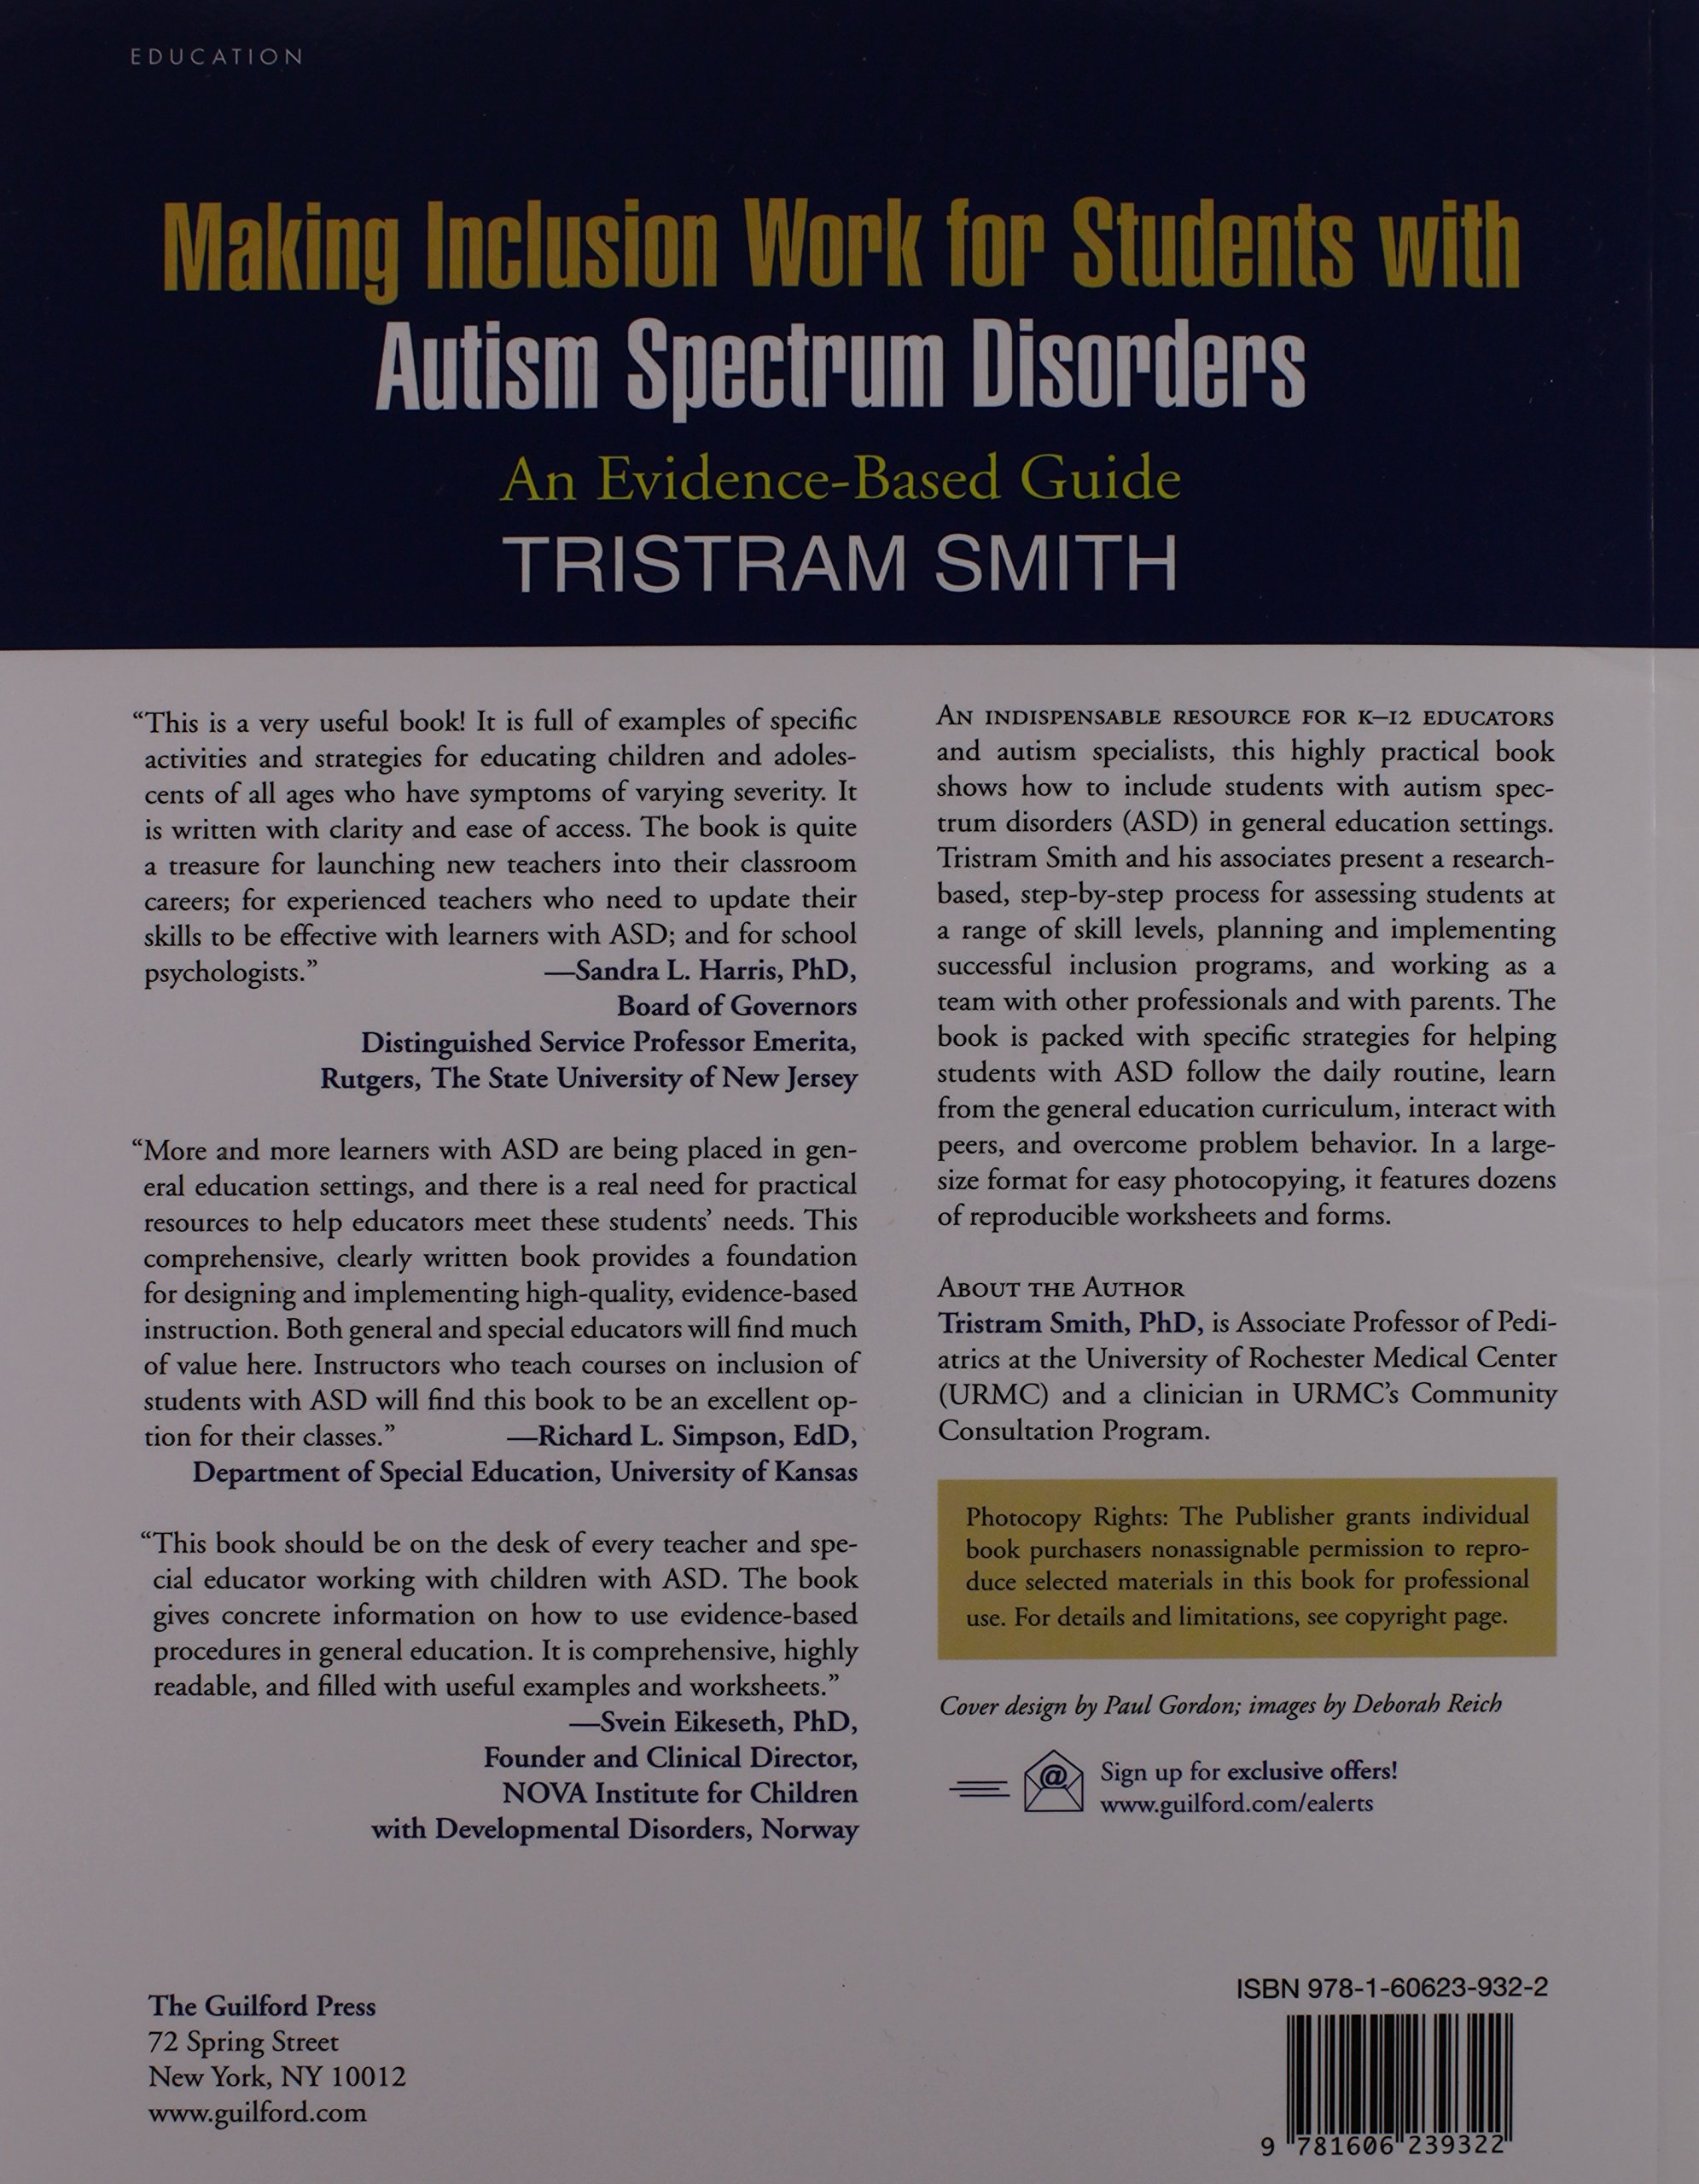 making inclusion work for students with autism spectrum disorders smith tristram